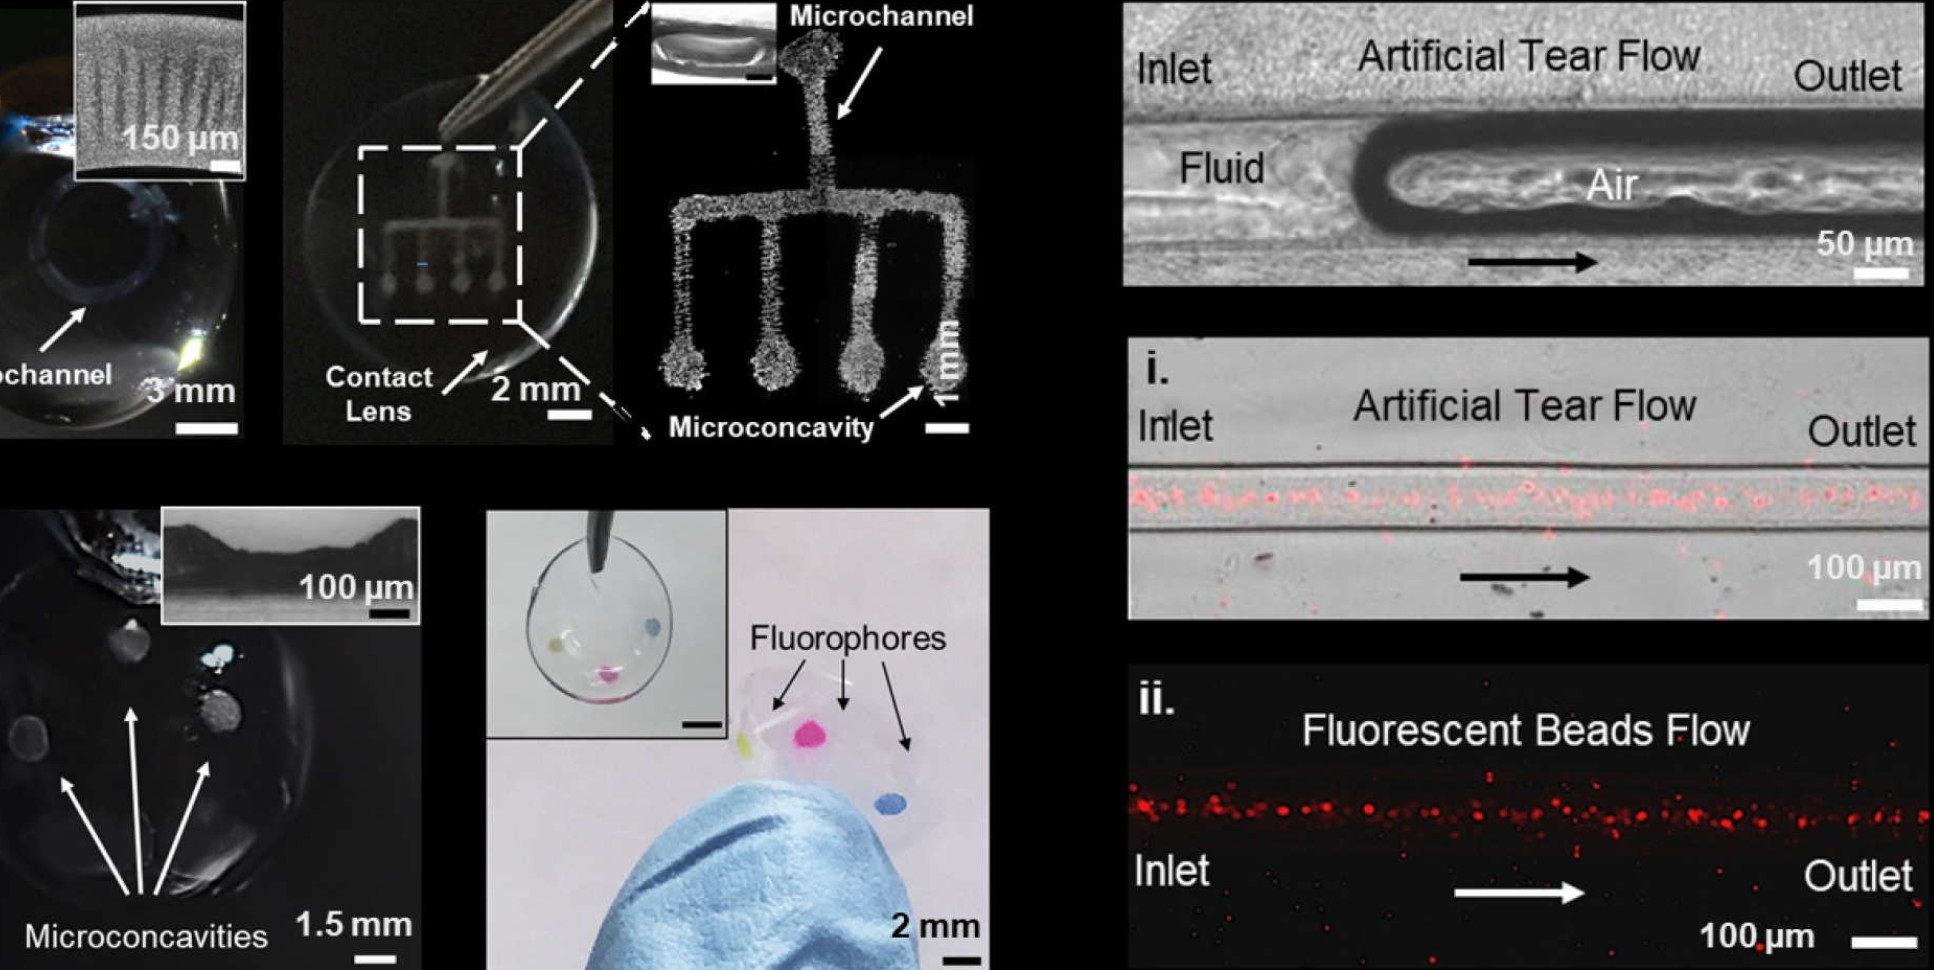 Images of microfluidic contact lenses showing microscale channels to transport fluids